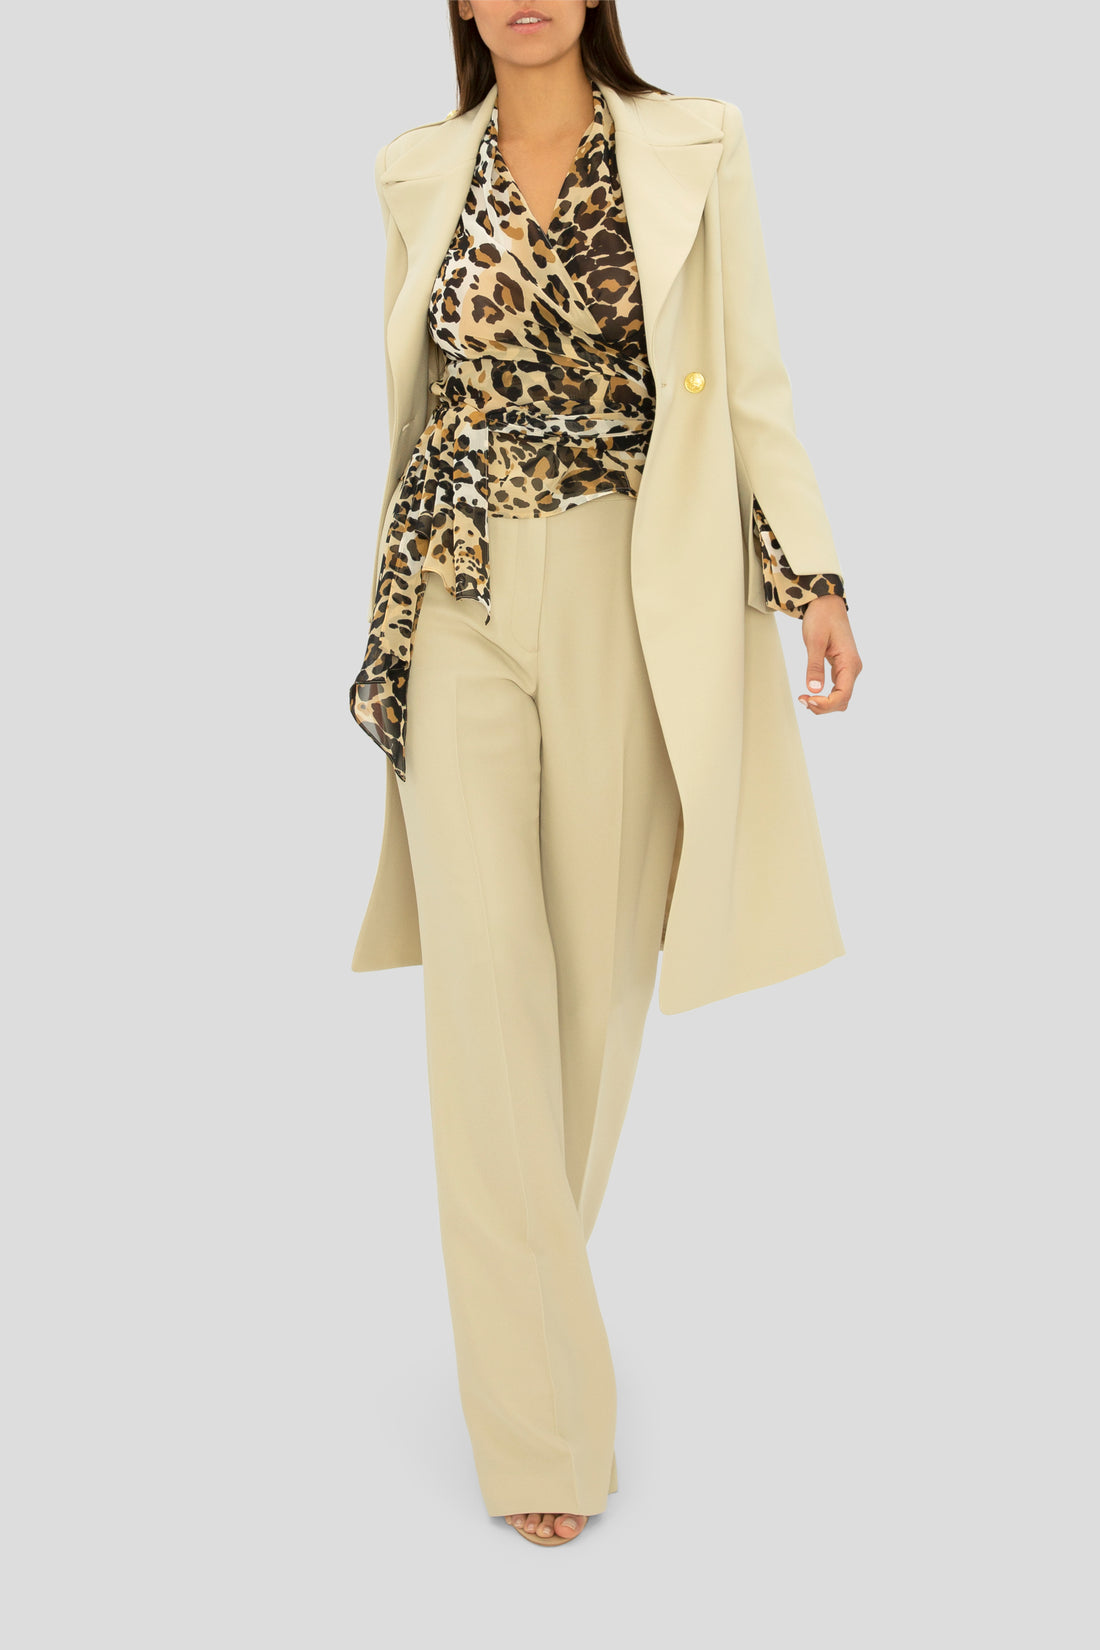 THE SAHARA SANDS COAT